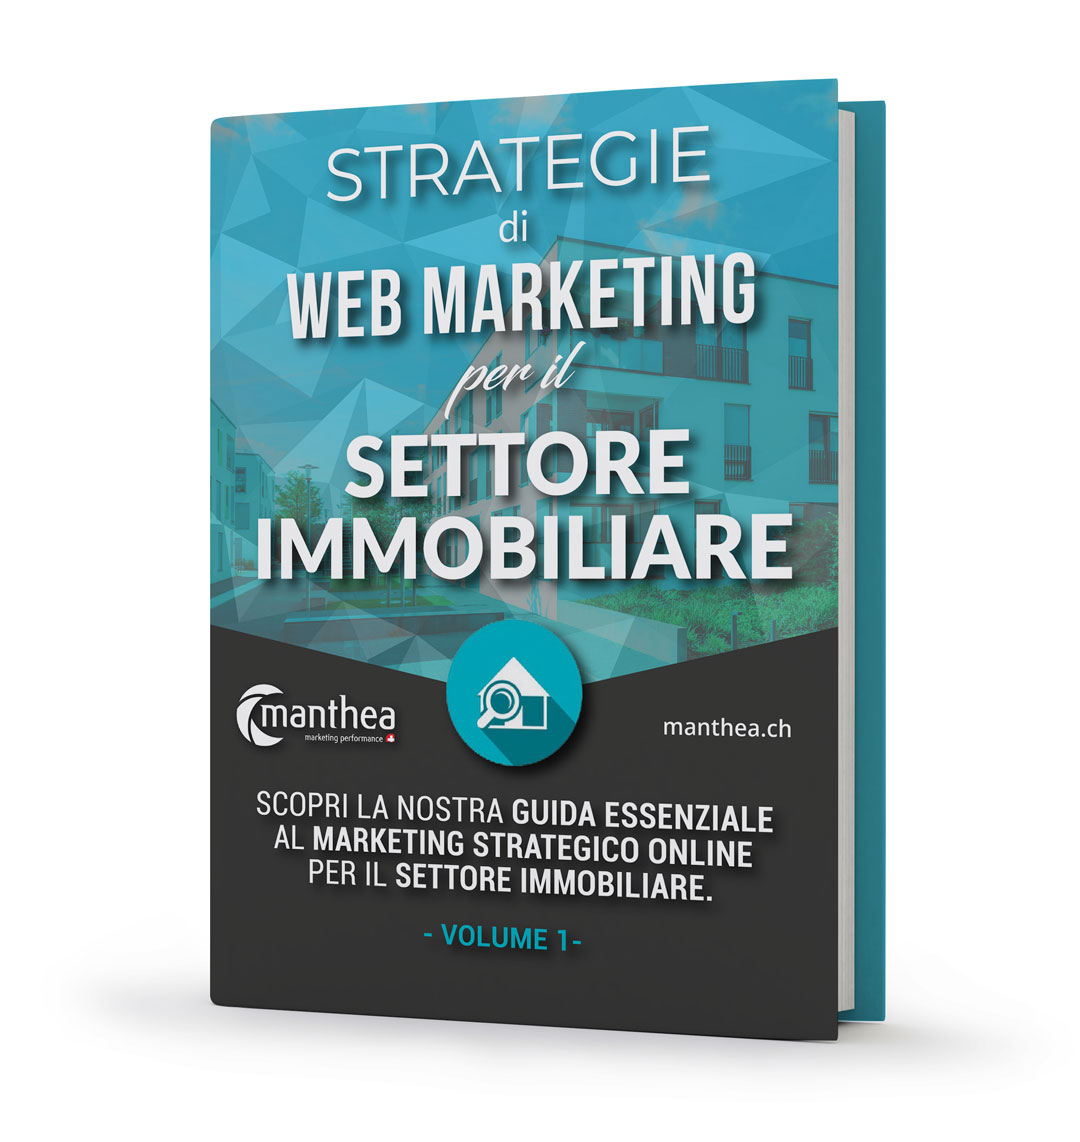 Strategie-di-Web-Marketing-per-il-Settore-Immobiliare-EBOOK-GRATUITO